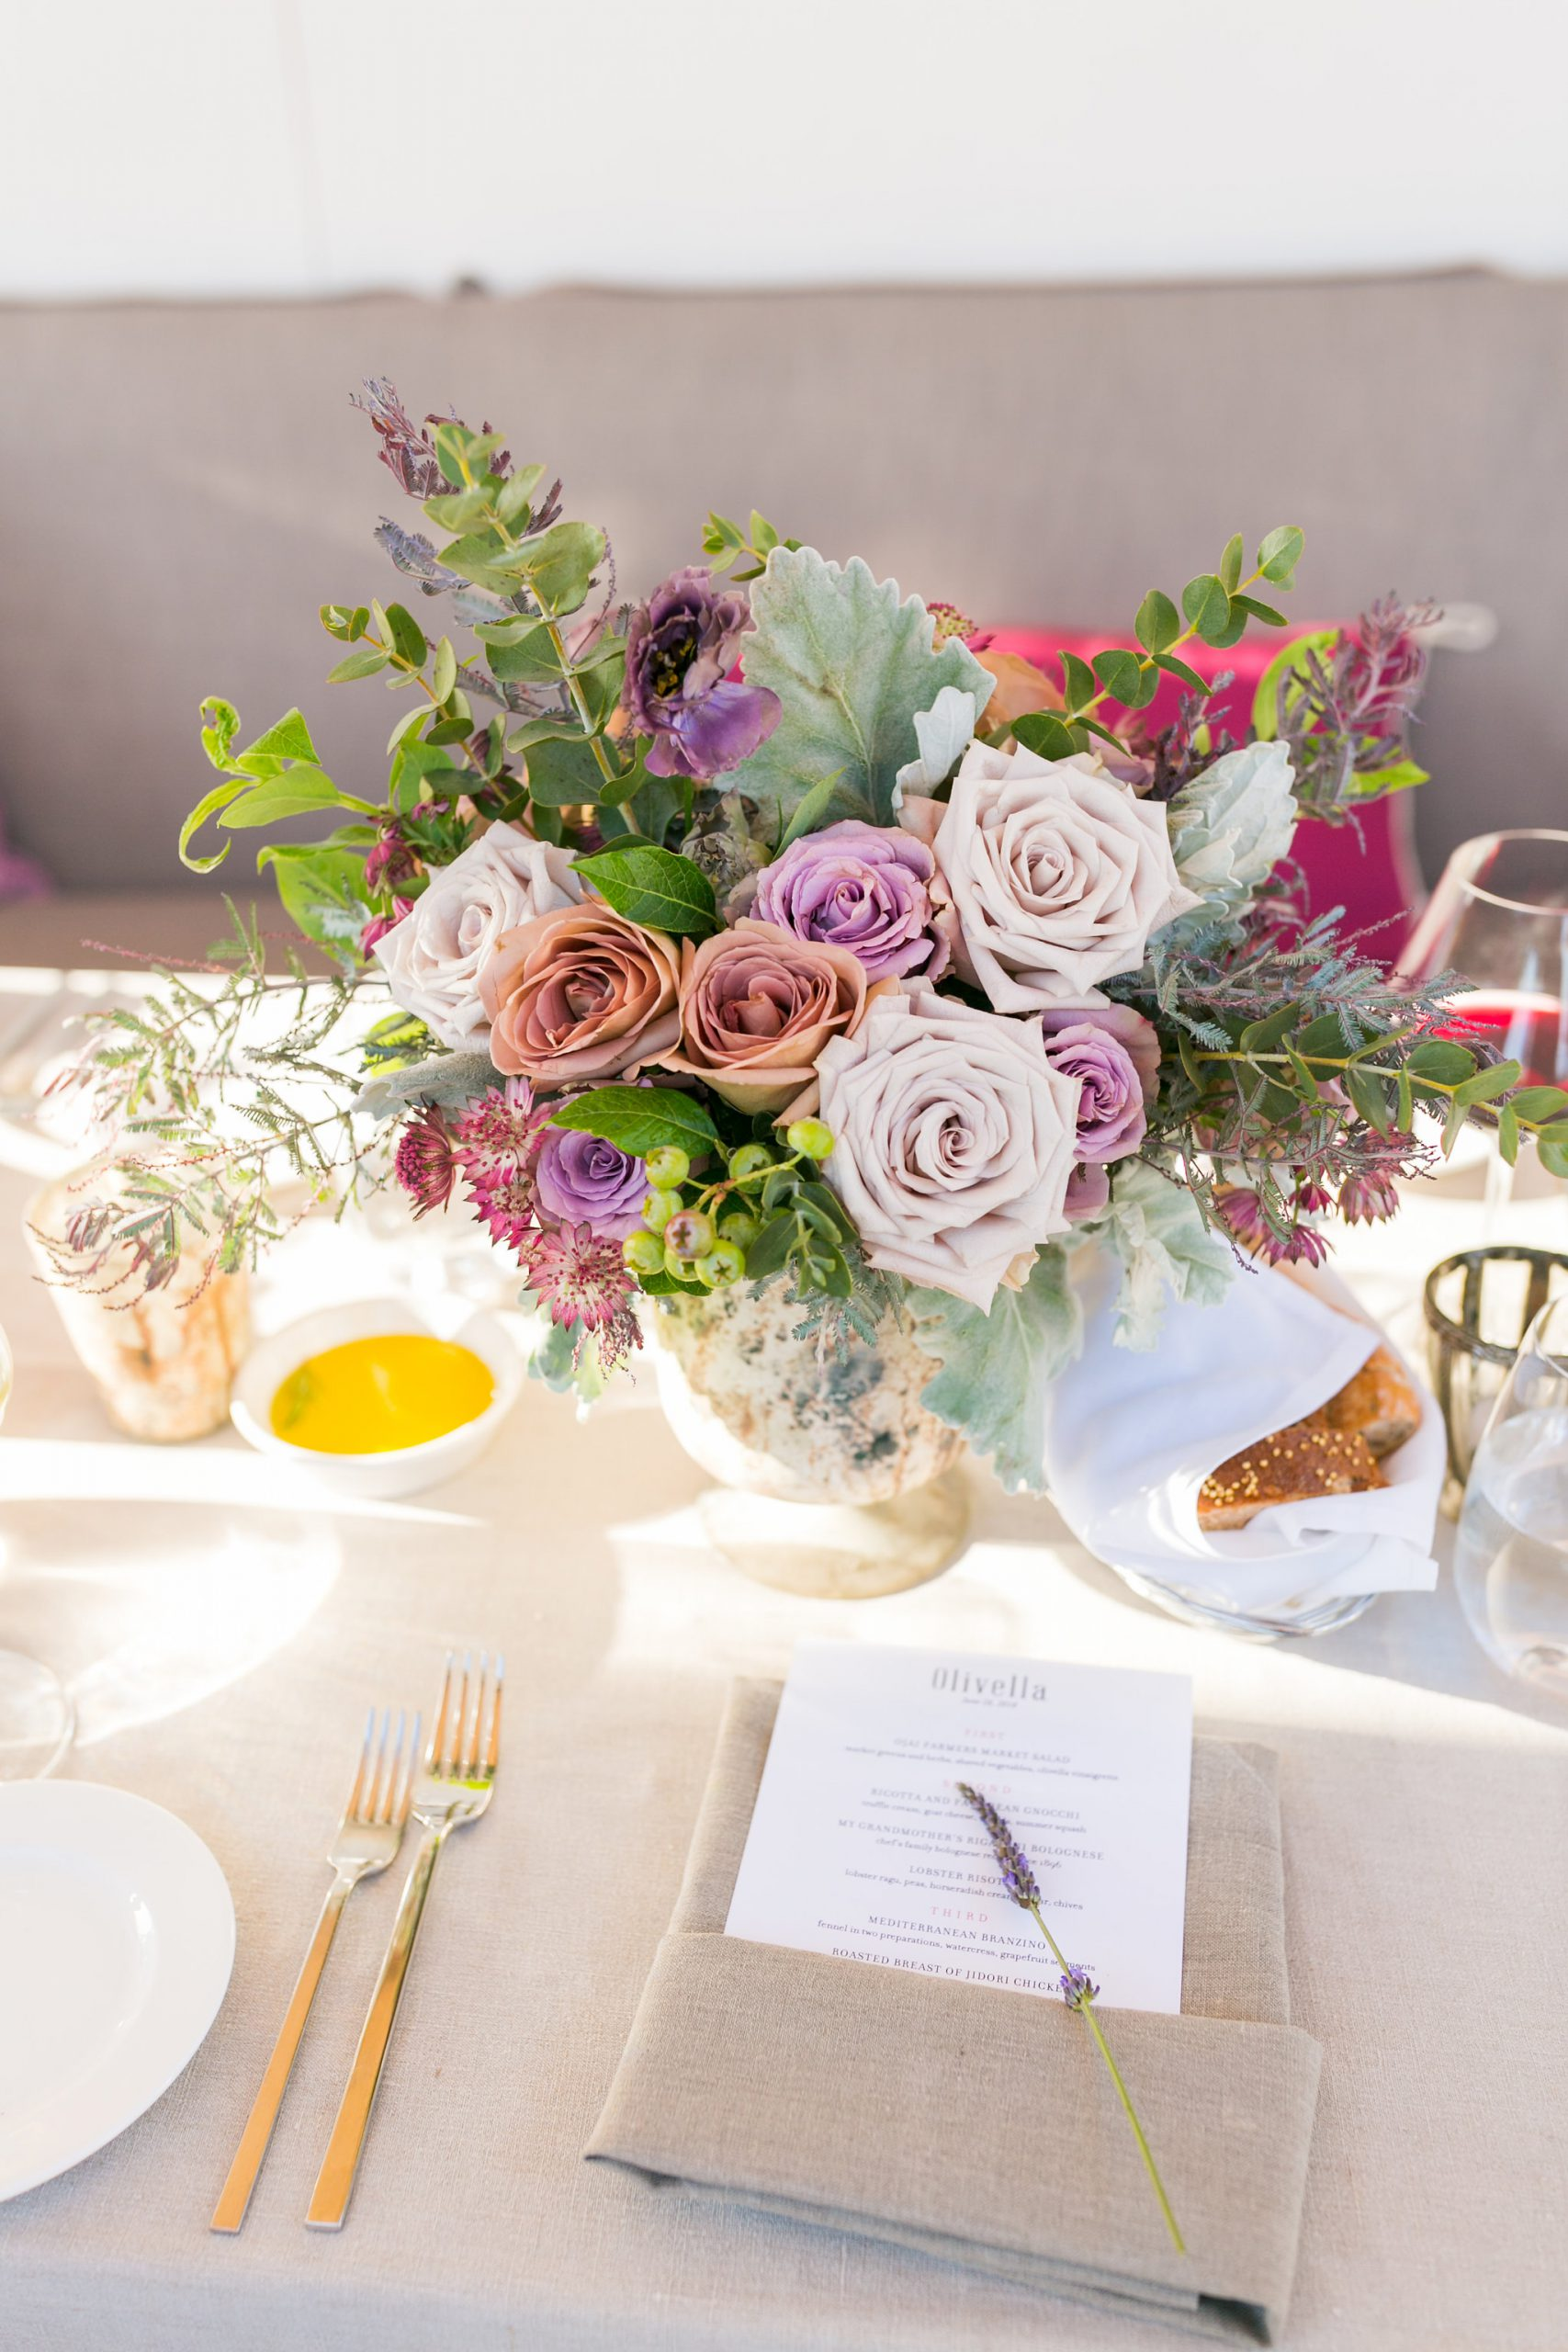 Ojai Valley Inn, Olivella Rehearsal Dinner - XOXO BRIDE Events